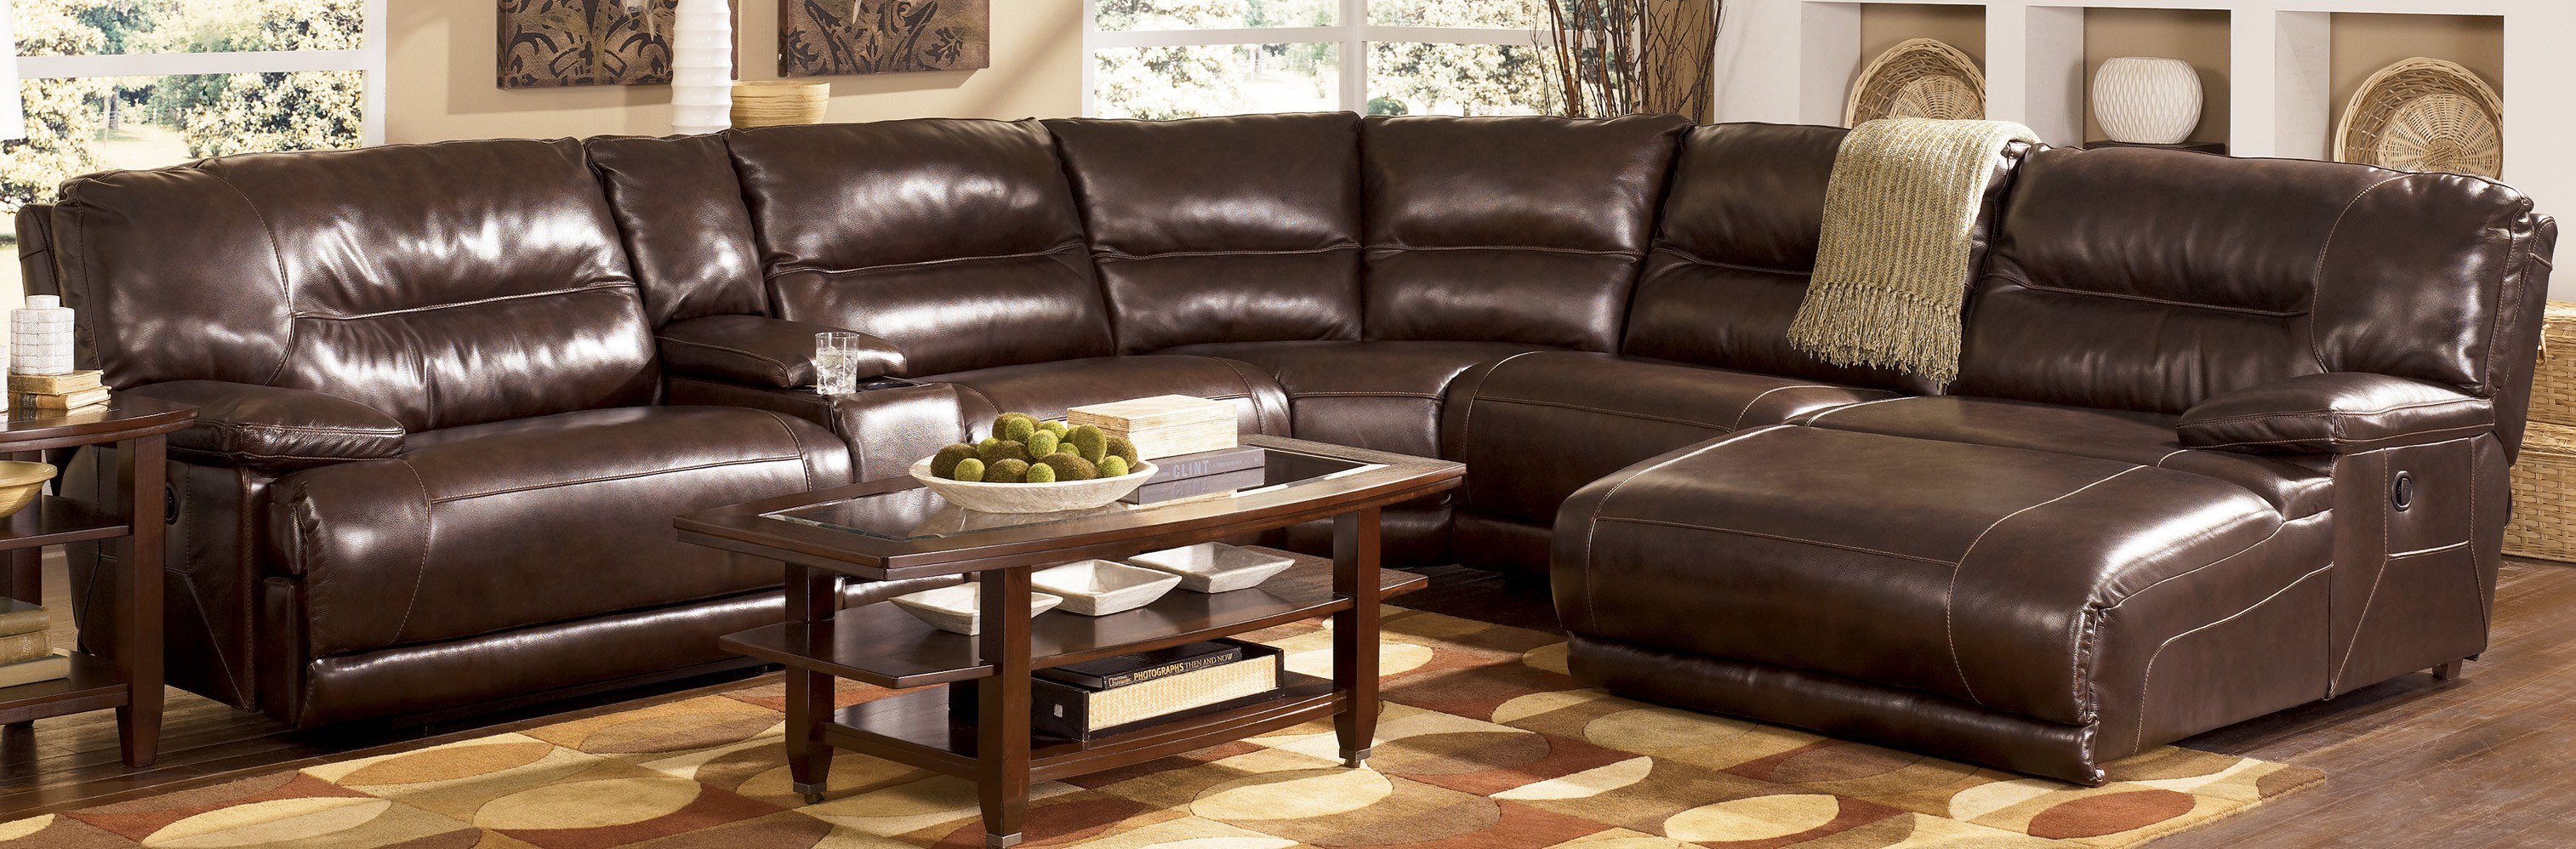 leather sectional sofa with chaise and recliner archaicawful sectional reclining sofa image concepte recliner inside leather WISAMXL